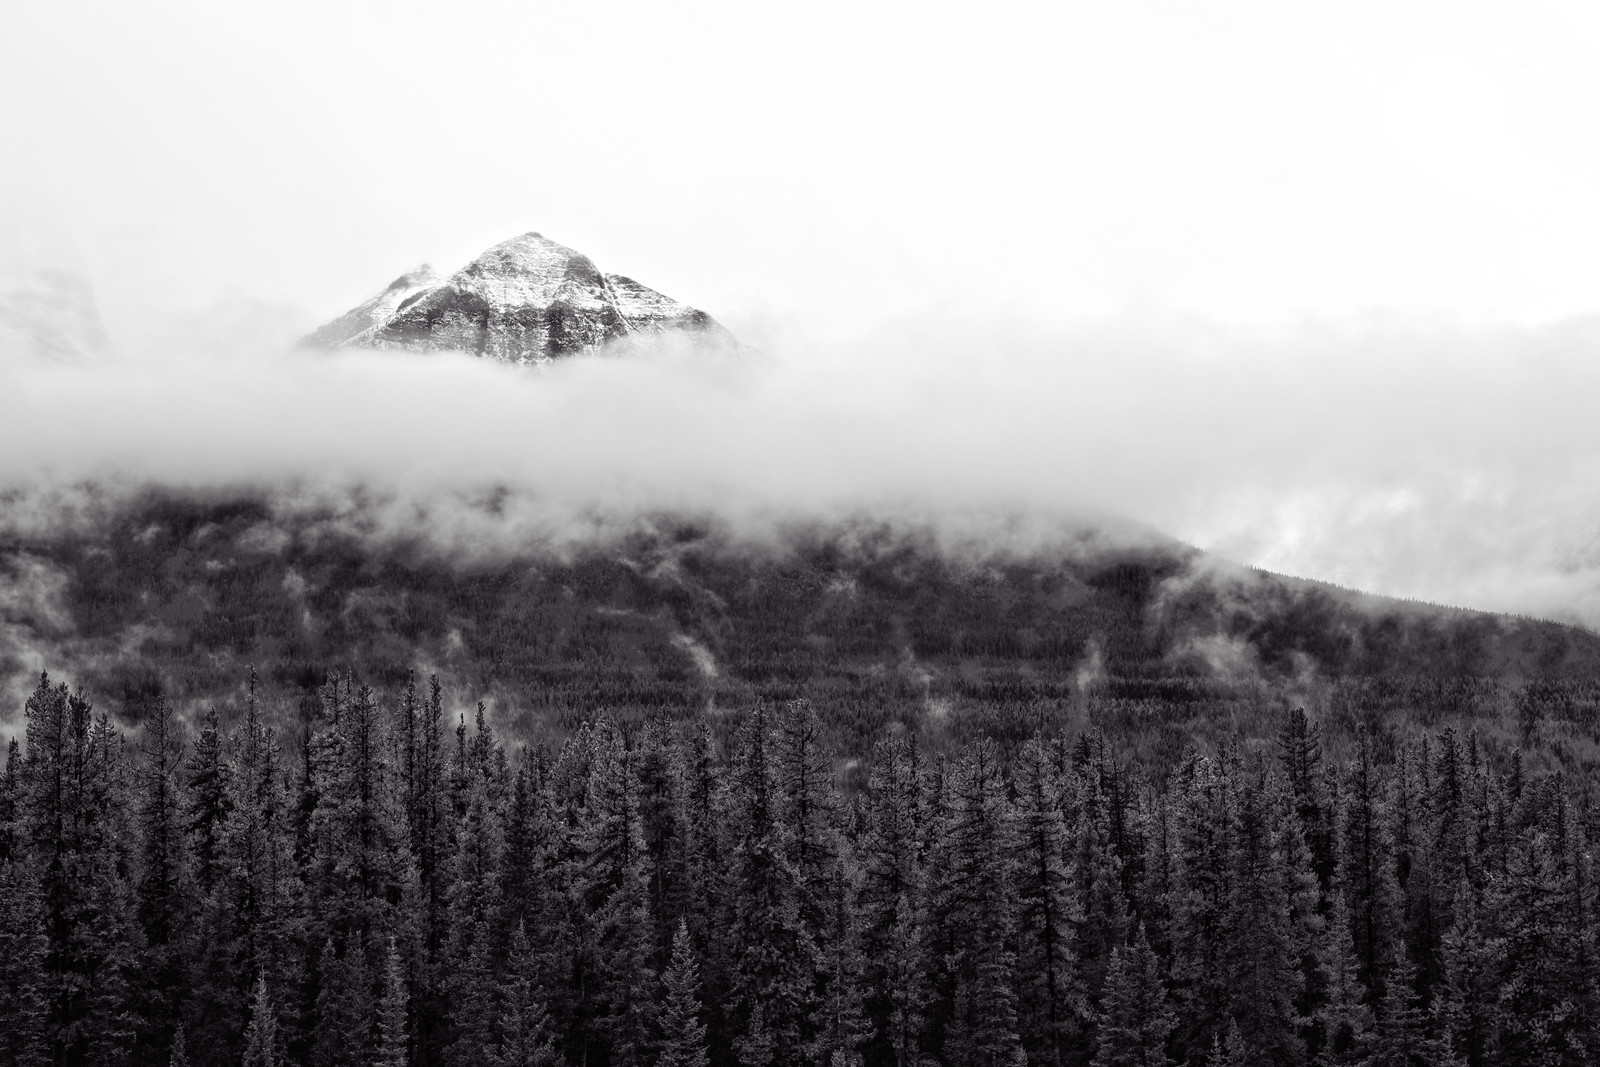 Mountain in the cClouds